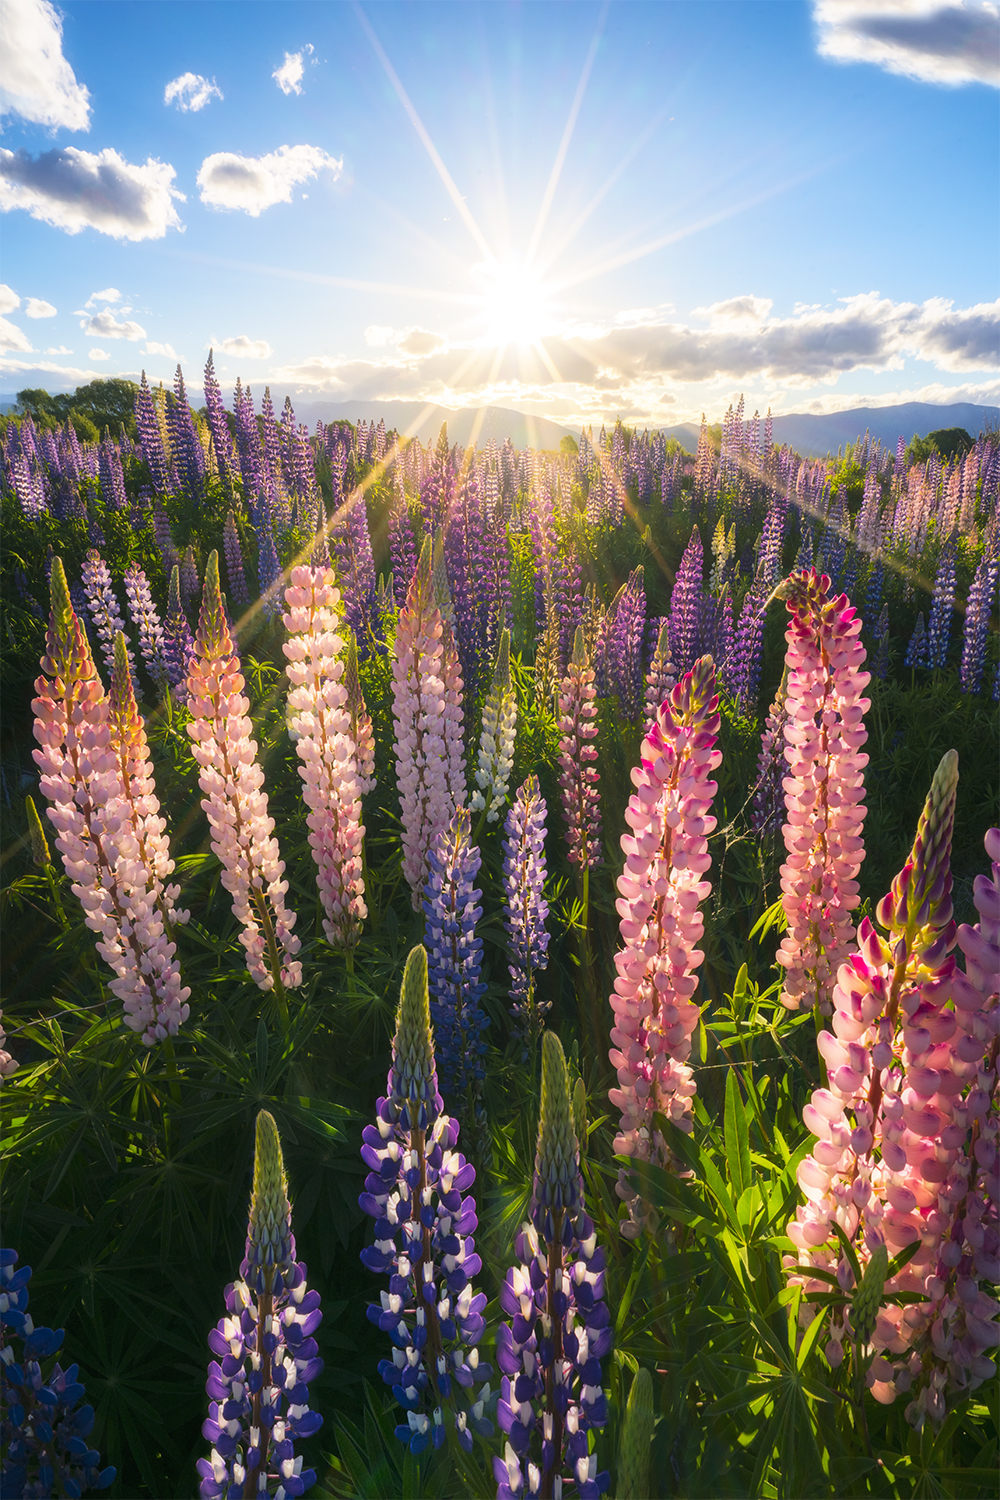 Field of lupins in New Zealand